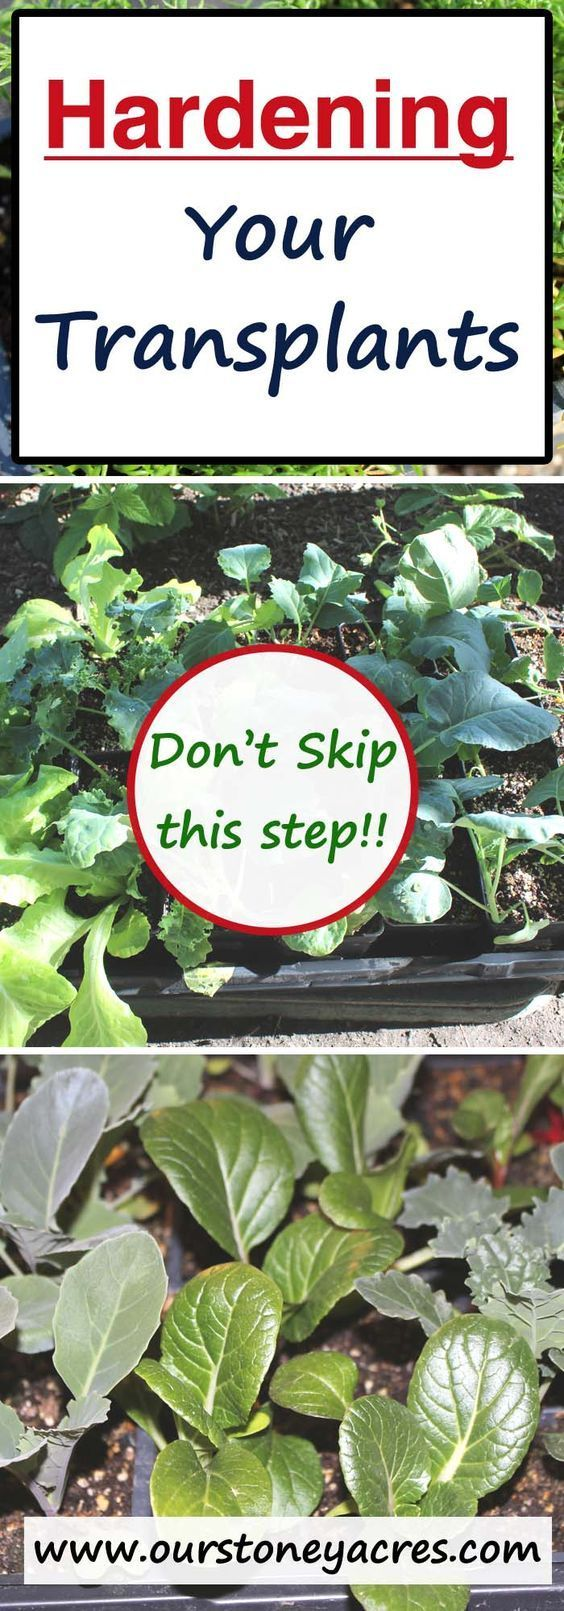 An important part of growing your own seedlings is hardening off your transplants. Dont skip this step or you risk loosing your transplants completely!